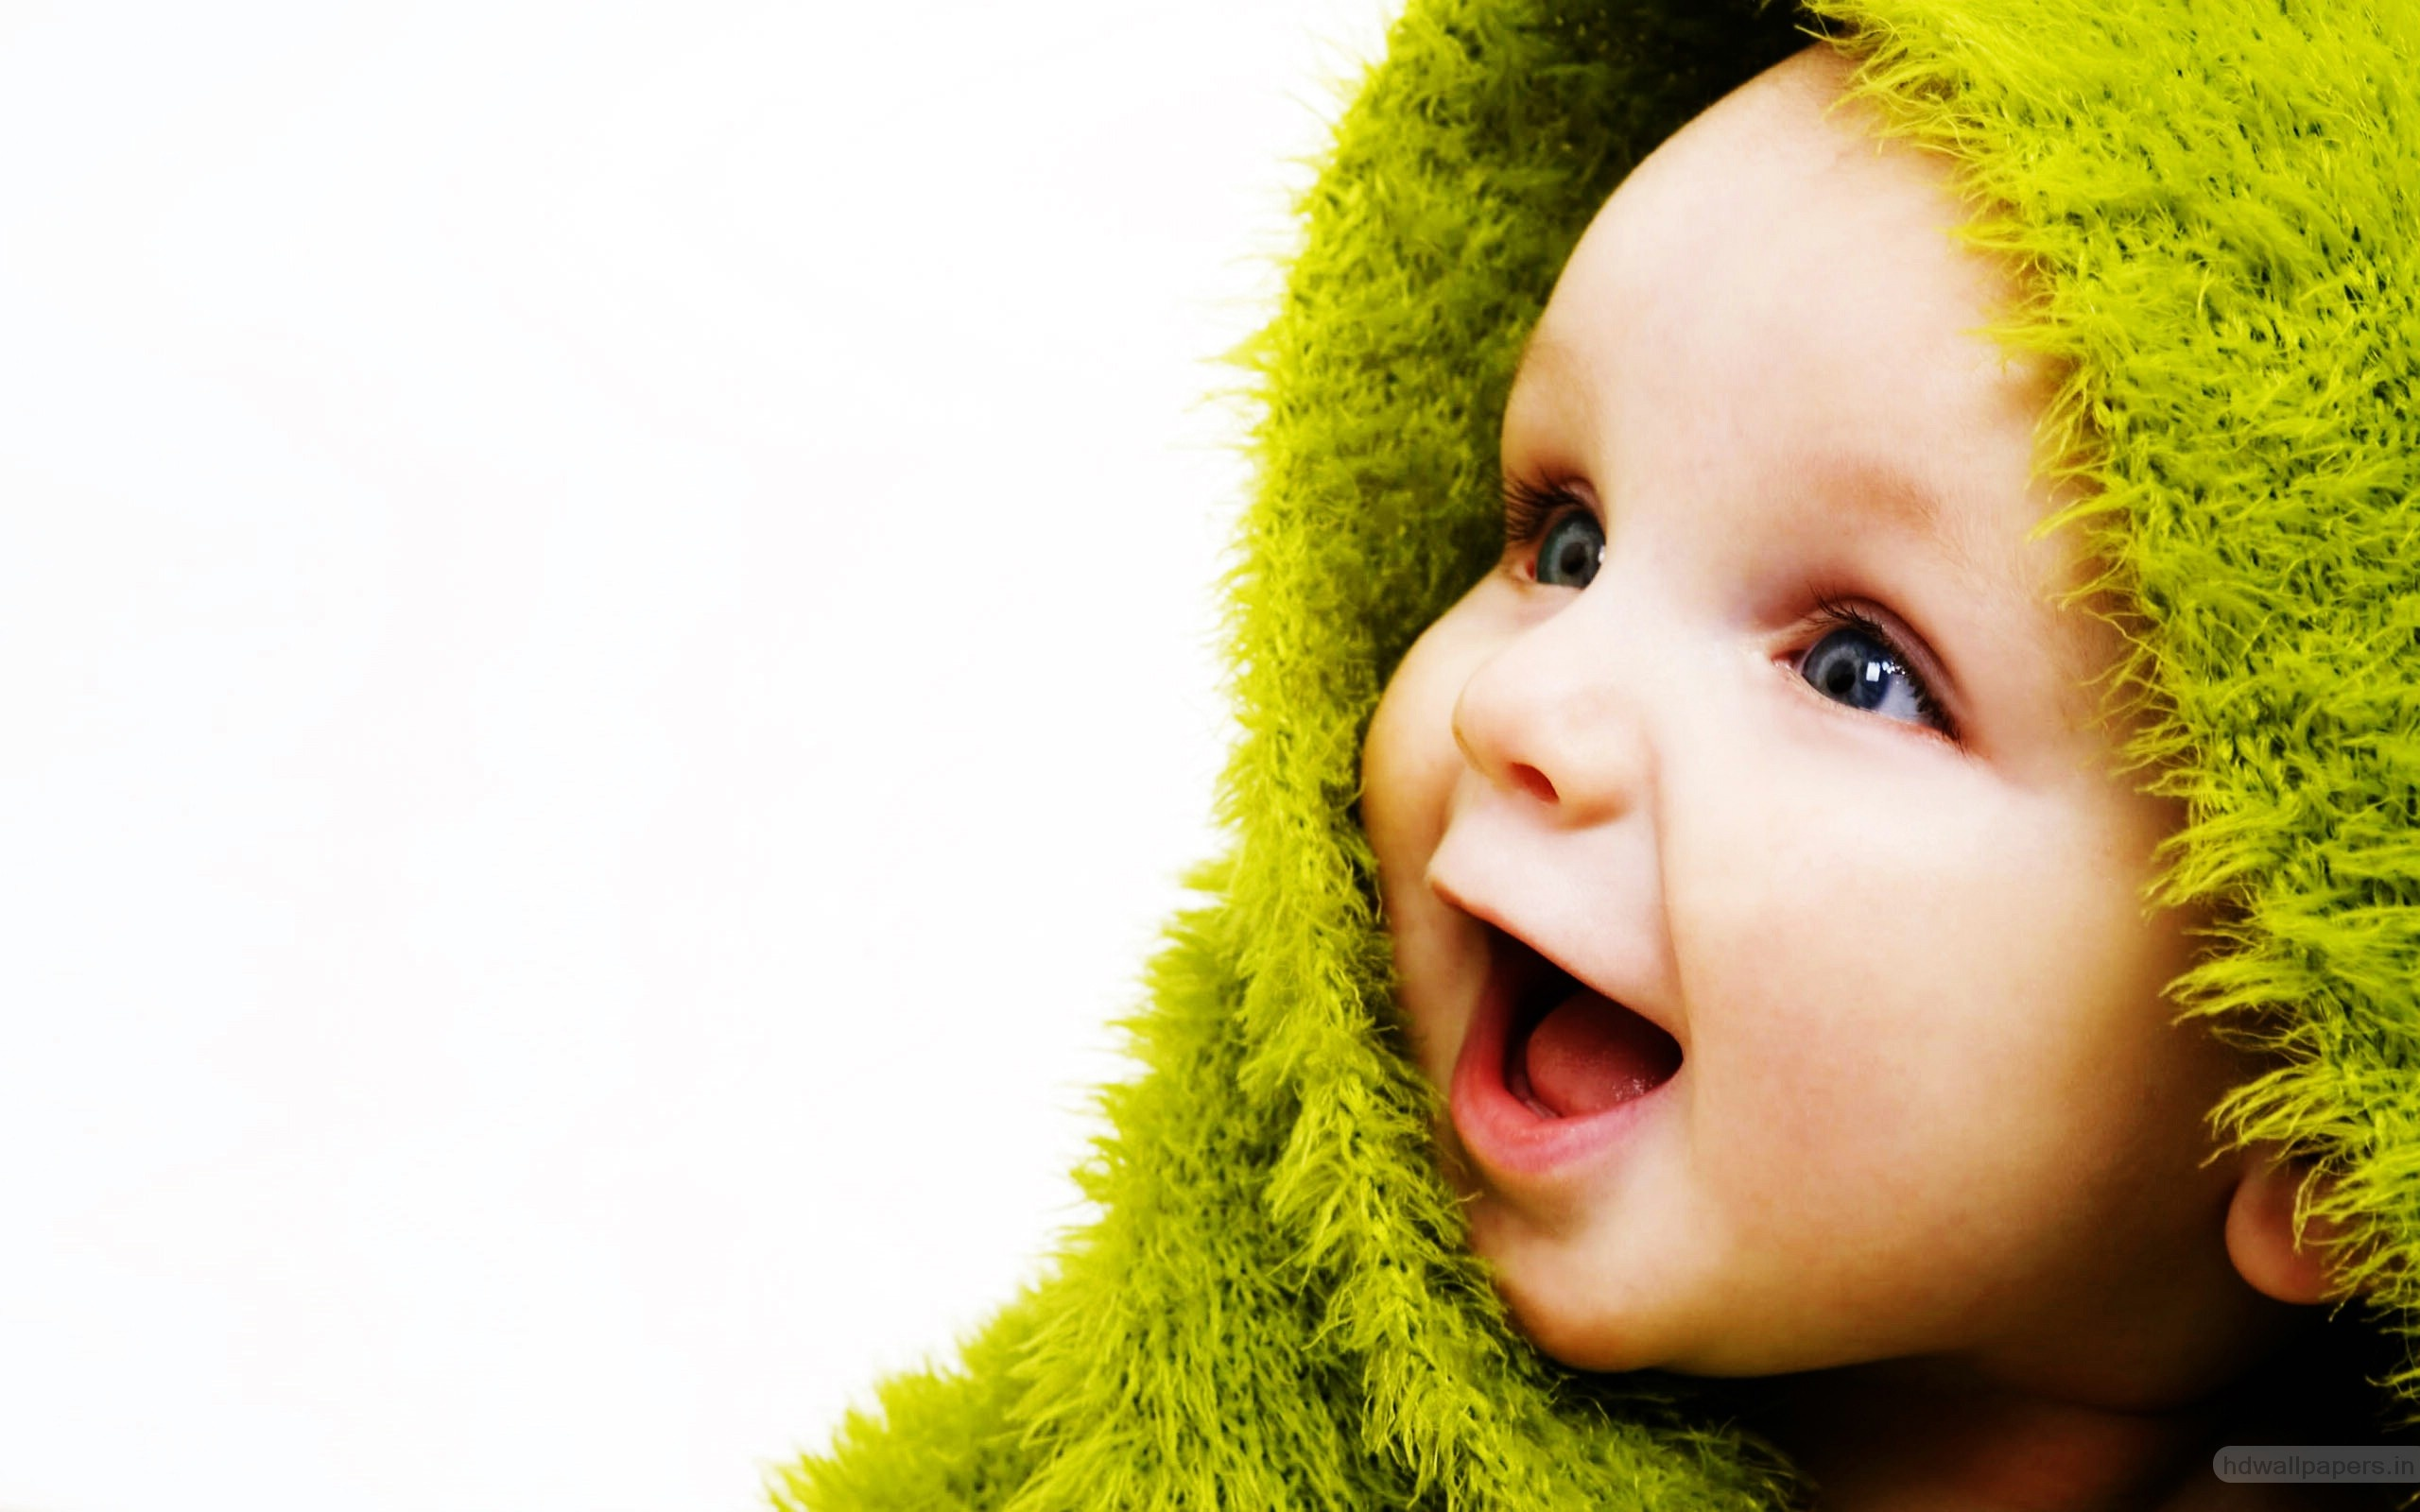 1024x640px Cute Wallpaper Download: Little Cute Baby Wallpapers In Jpg Format For Free Download